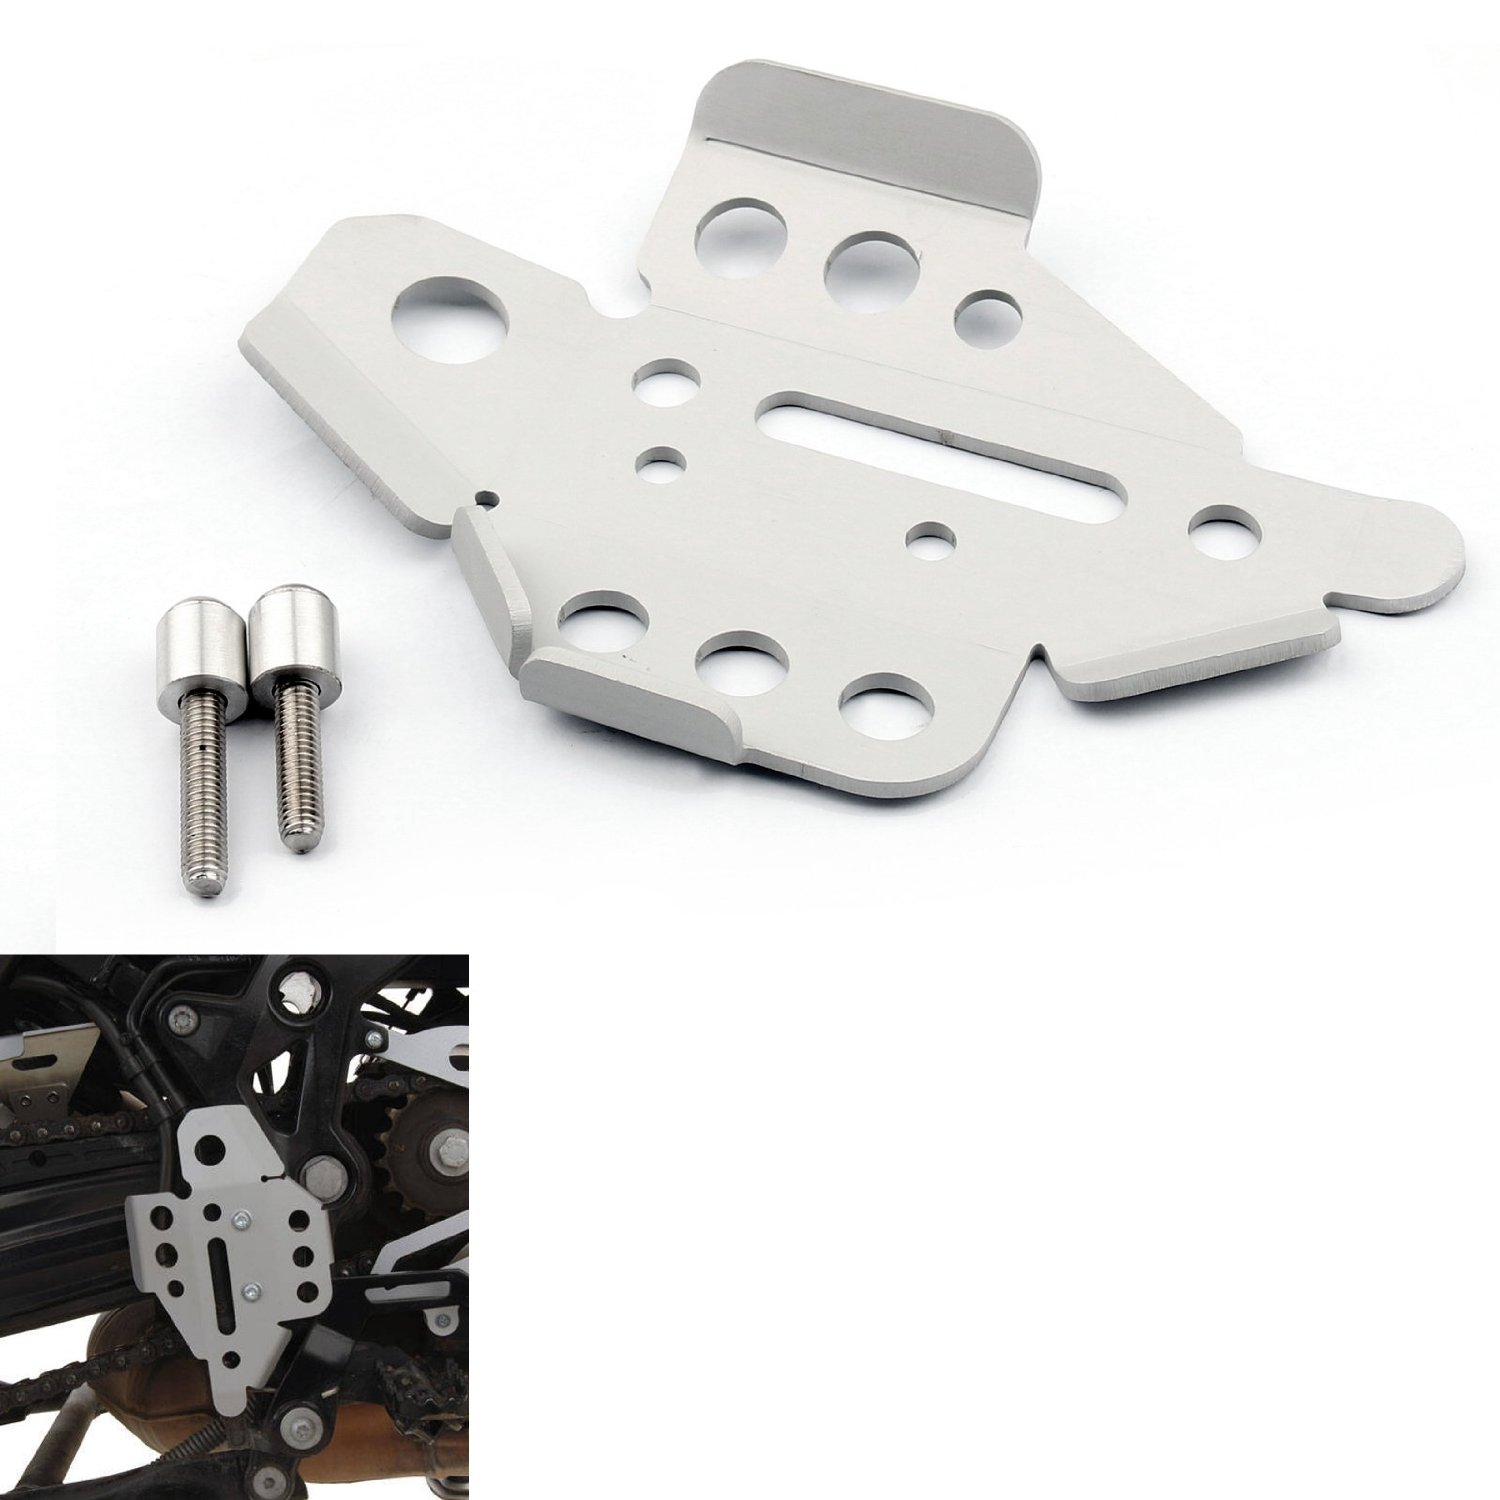 Areyourshop Right Side Frame Guard For BMW F800GS / Adventure F700GS F650GS-Twin 2008-2015